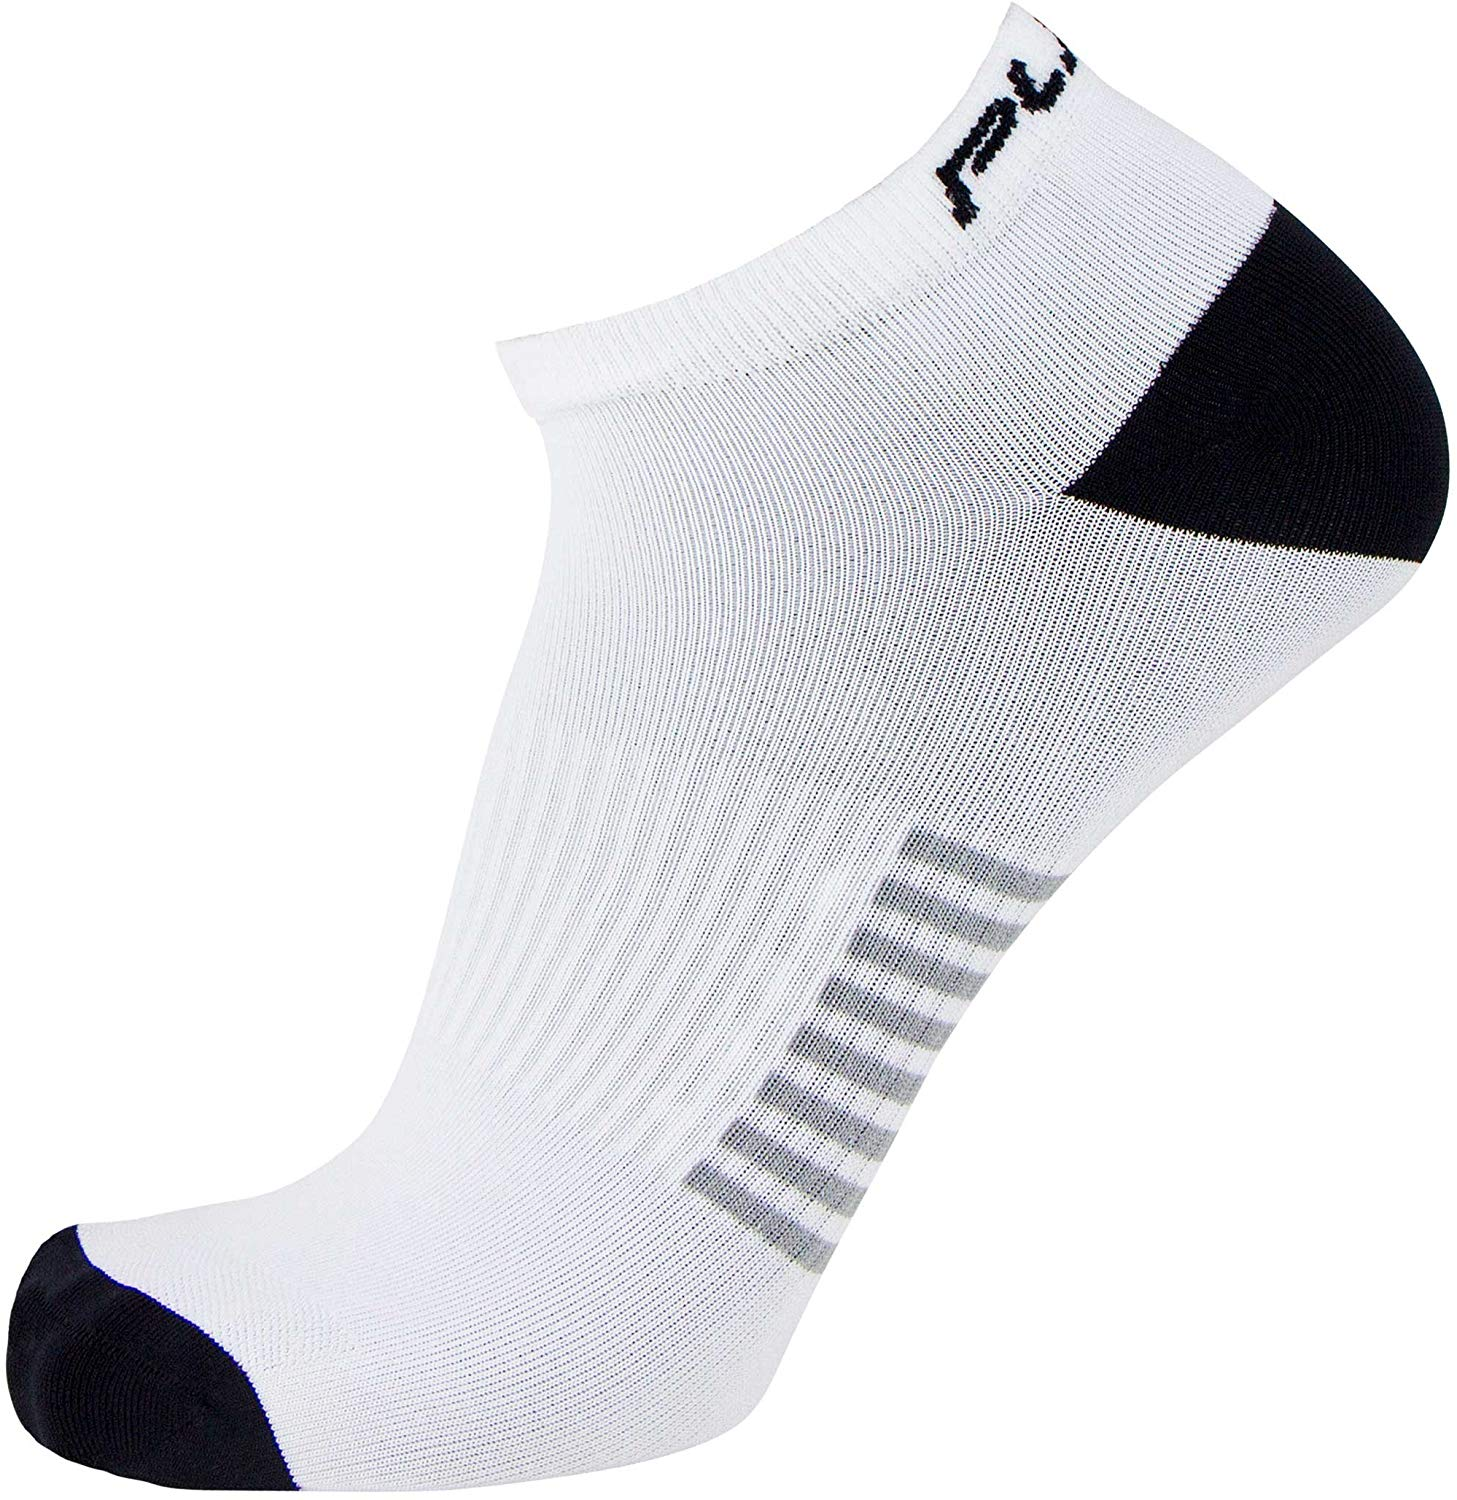 Ultra-Thin Running Socks